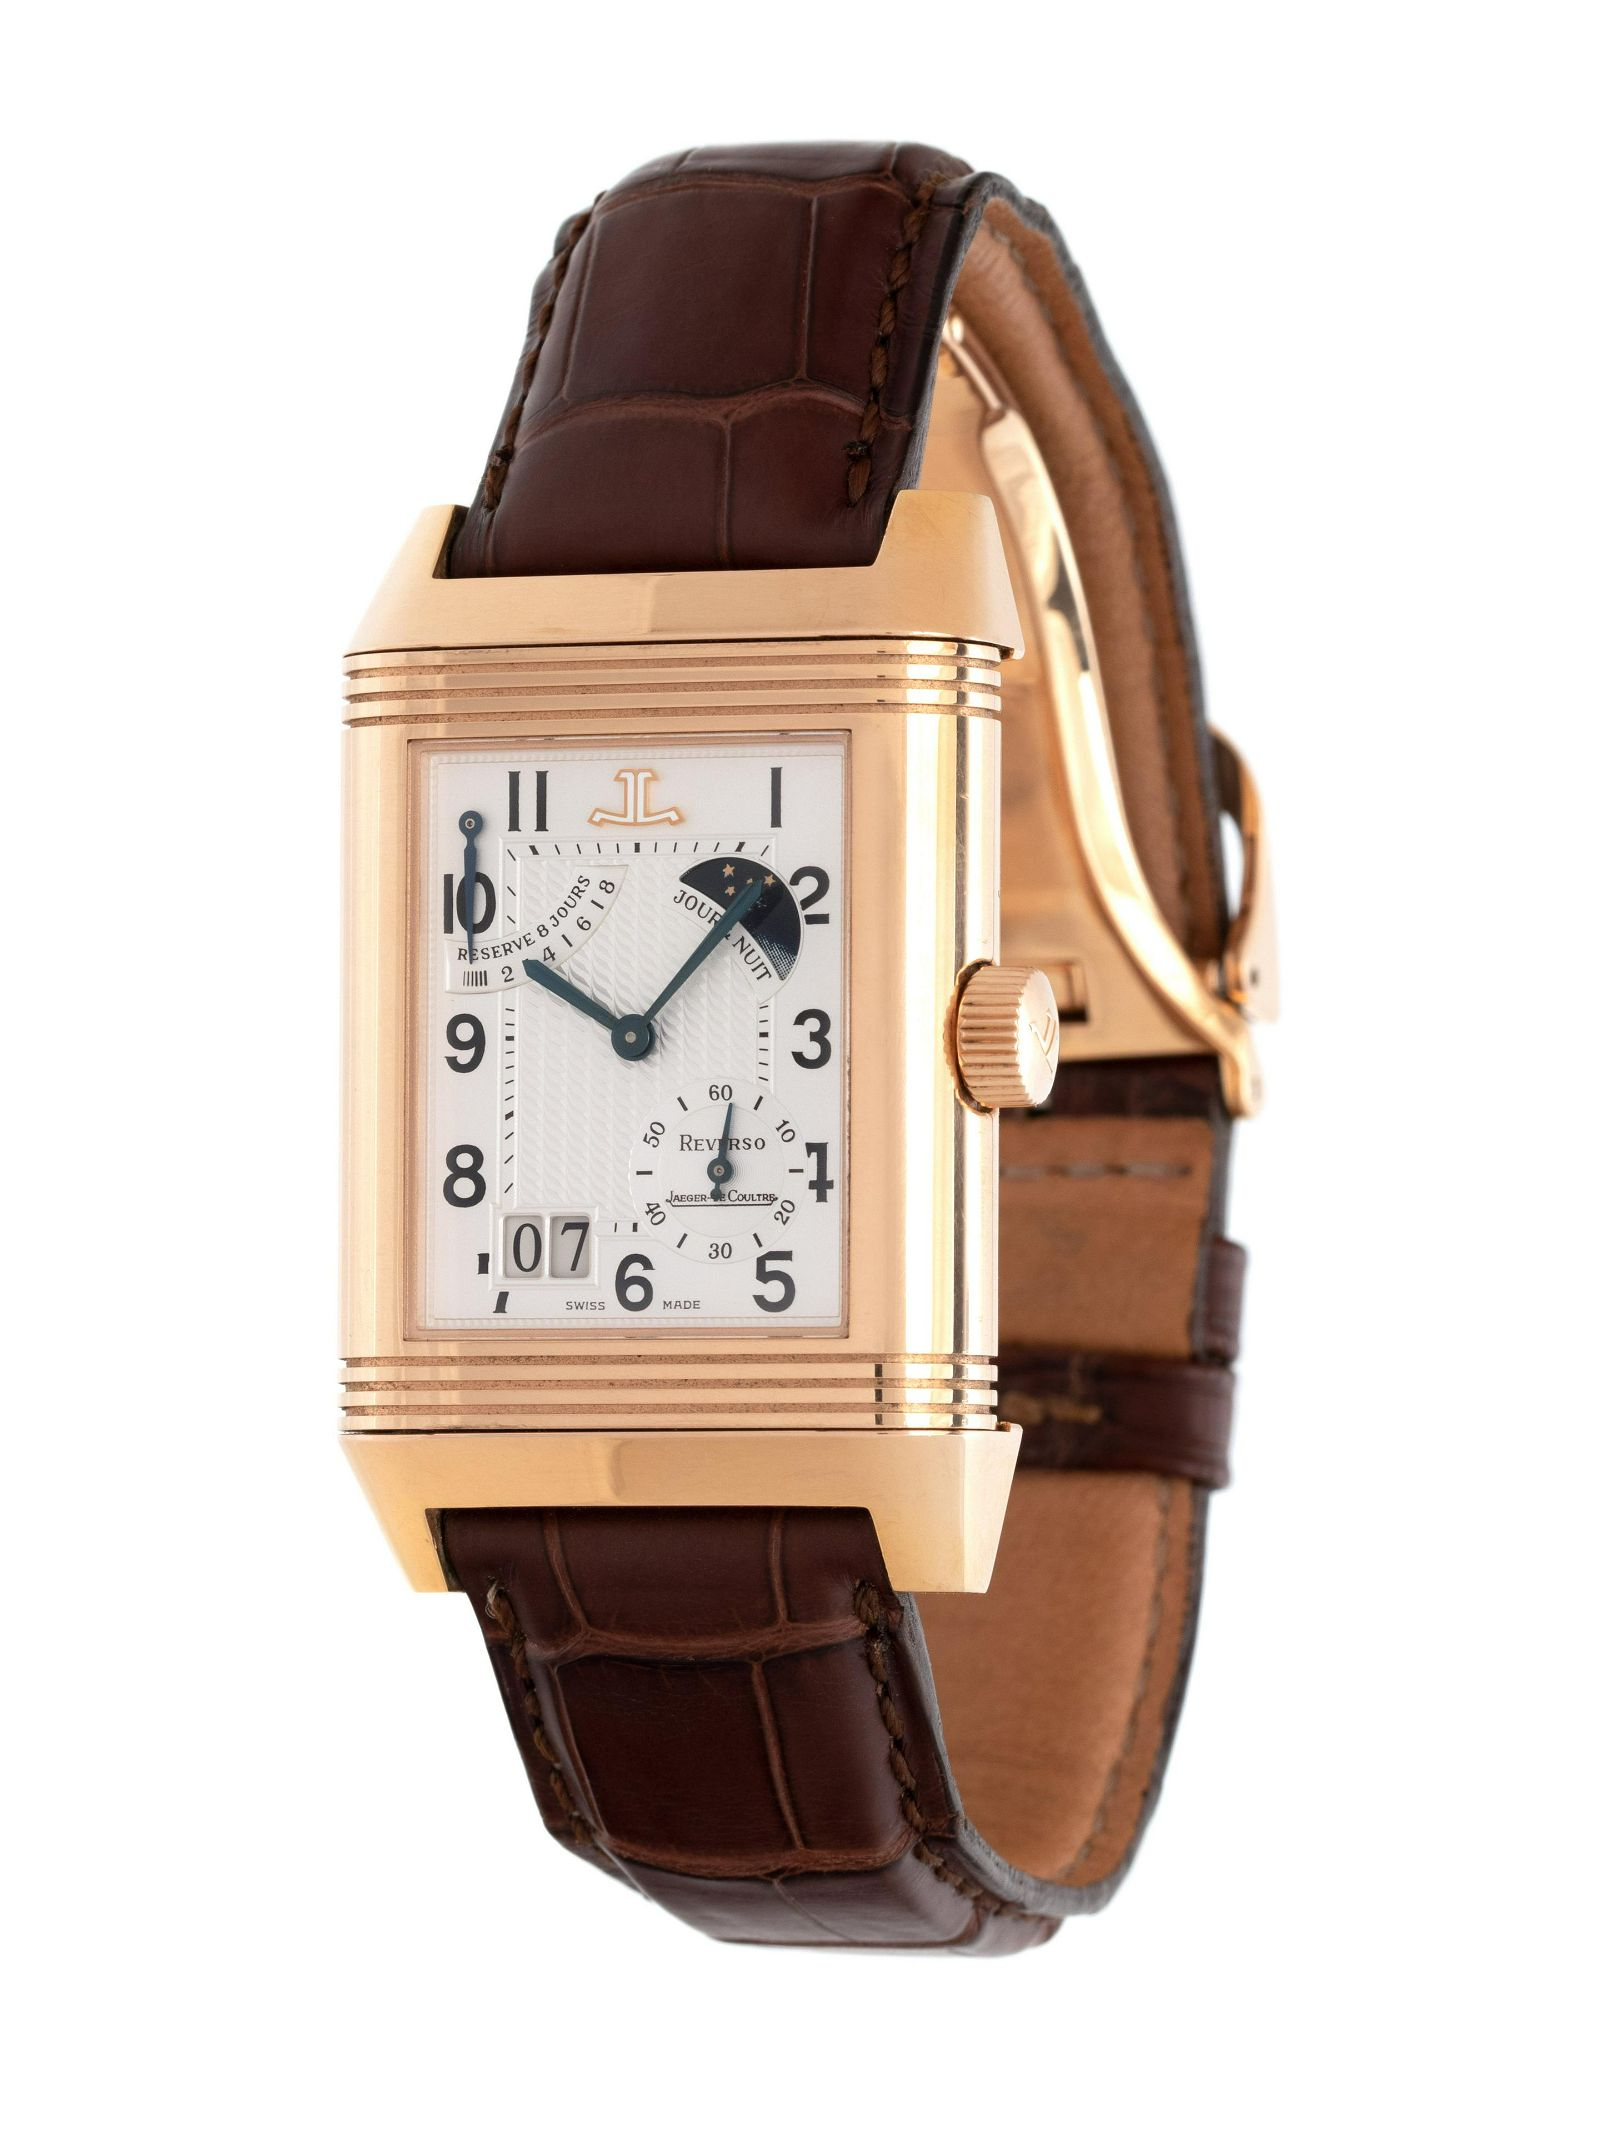 JAEGER-LeCOULTRE, 18K PINK GOLD LIMITED EDITION REF.